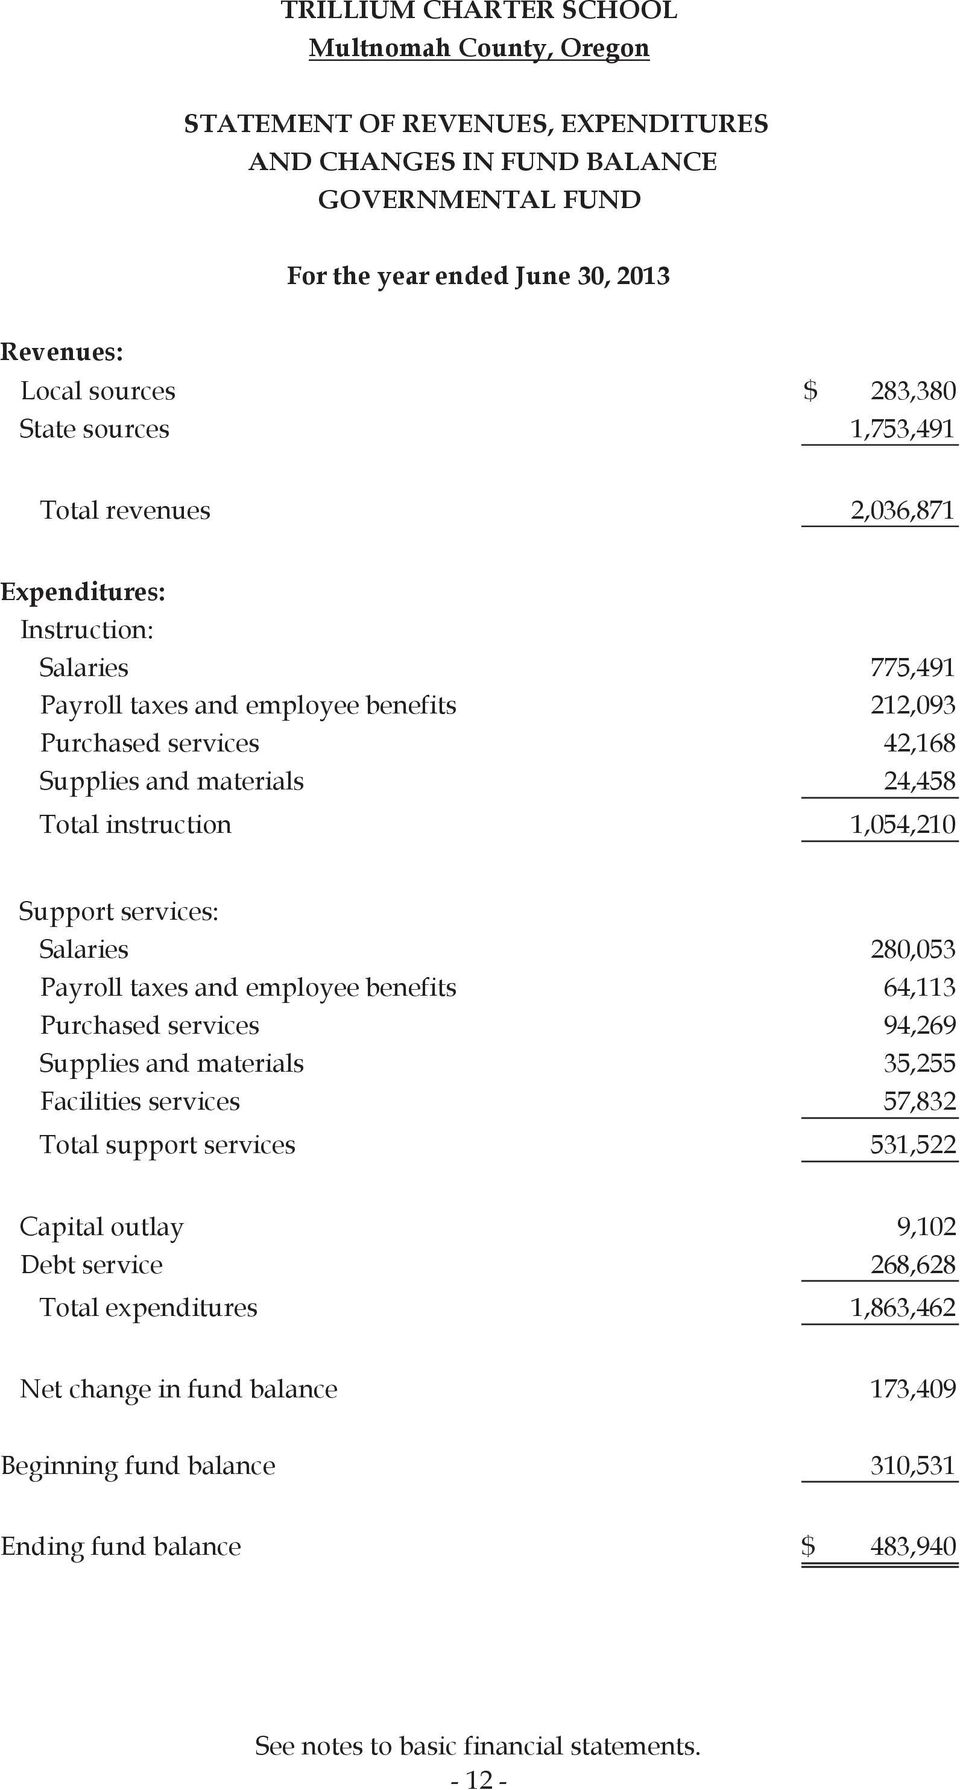 Support services: Salaries 280,053 Payroll taxes and employee benefits 64,113 Purchased services 94,269 Supplies and materials 35,255 Facilities services 57,832 Total support services 531,522 Capital